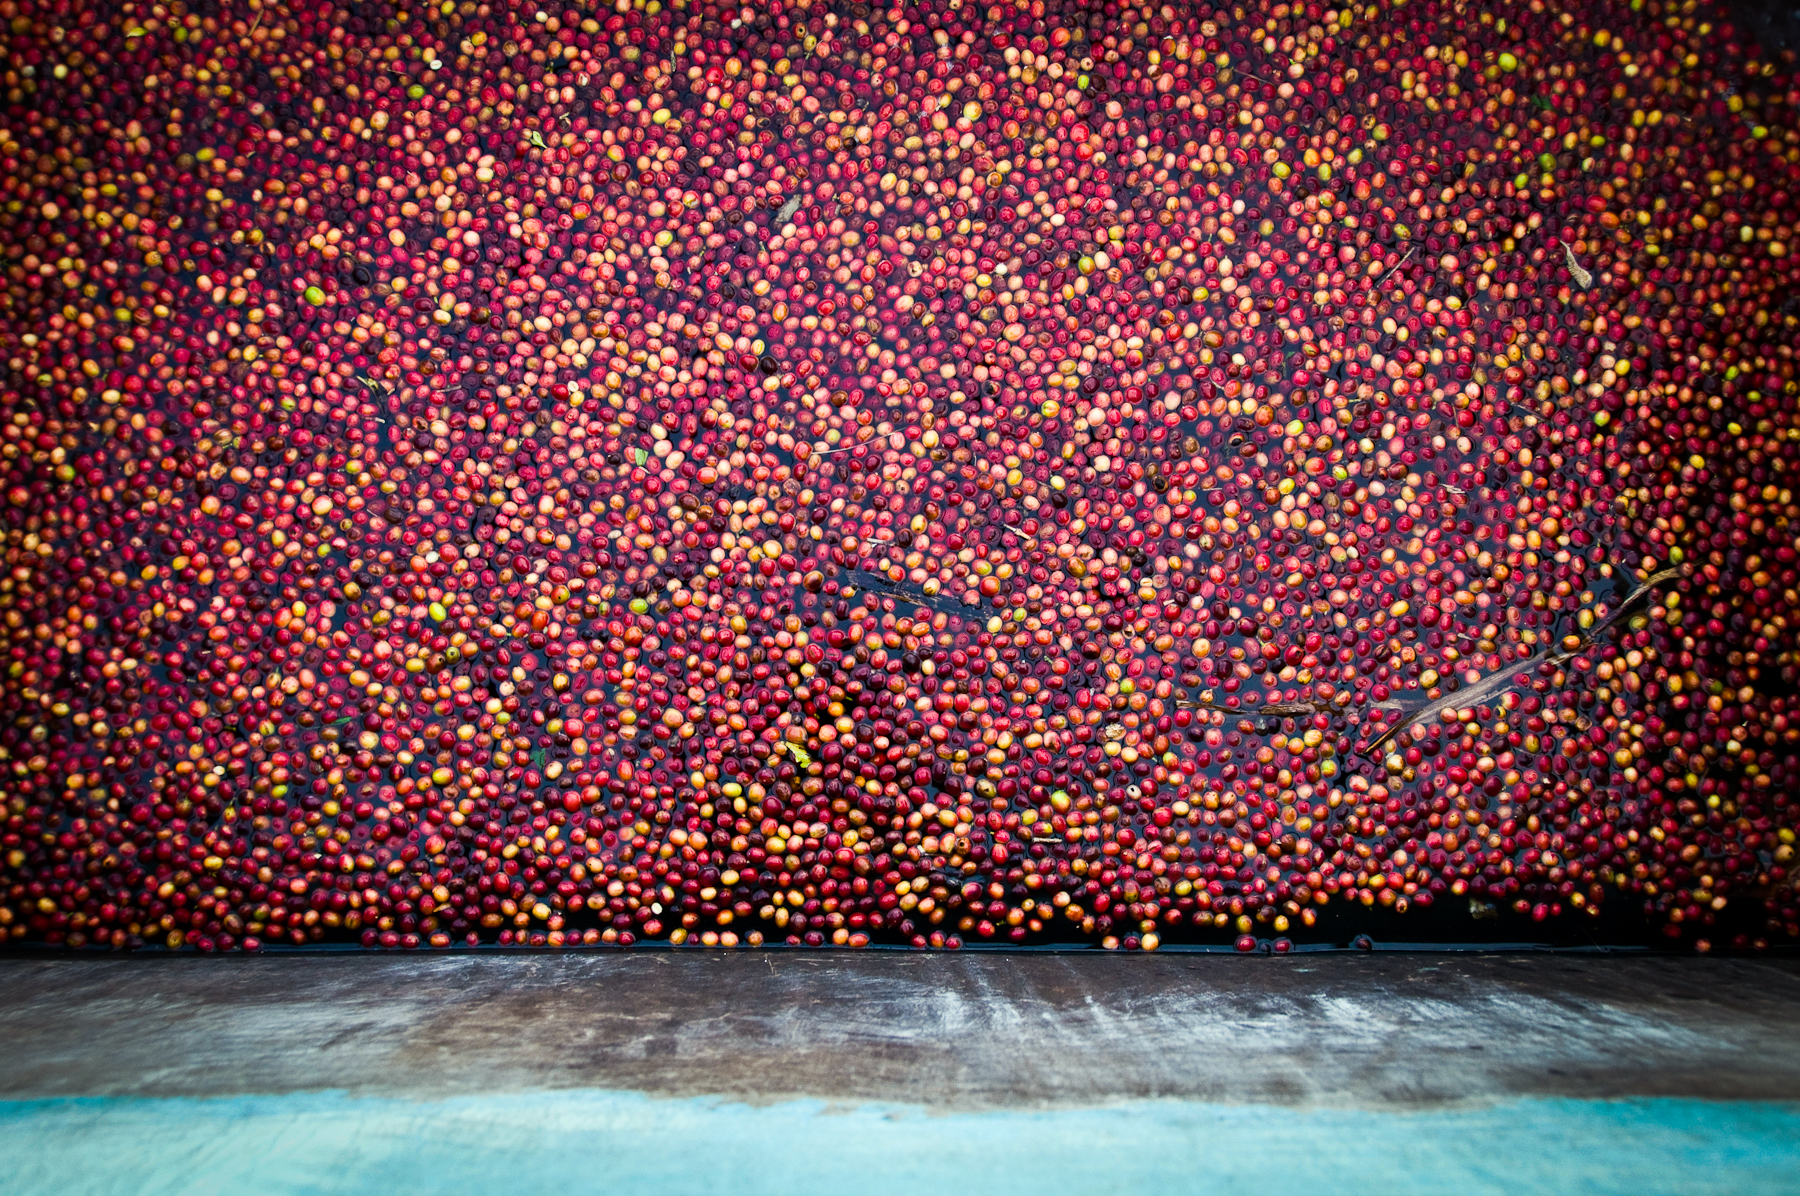 Premium coffee differs from regular coffee in two ways: It must be washed thoroughly, and it must score at least 80 points on a quality scale. Here, freshly picked coffee cherries are washed and sorted by weight at the Nyarusiza Coffee Washing Station.